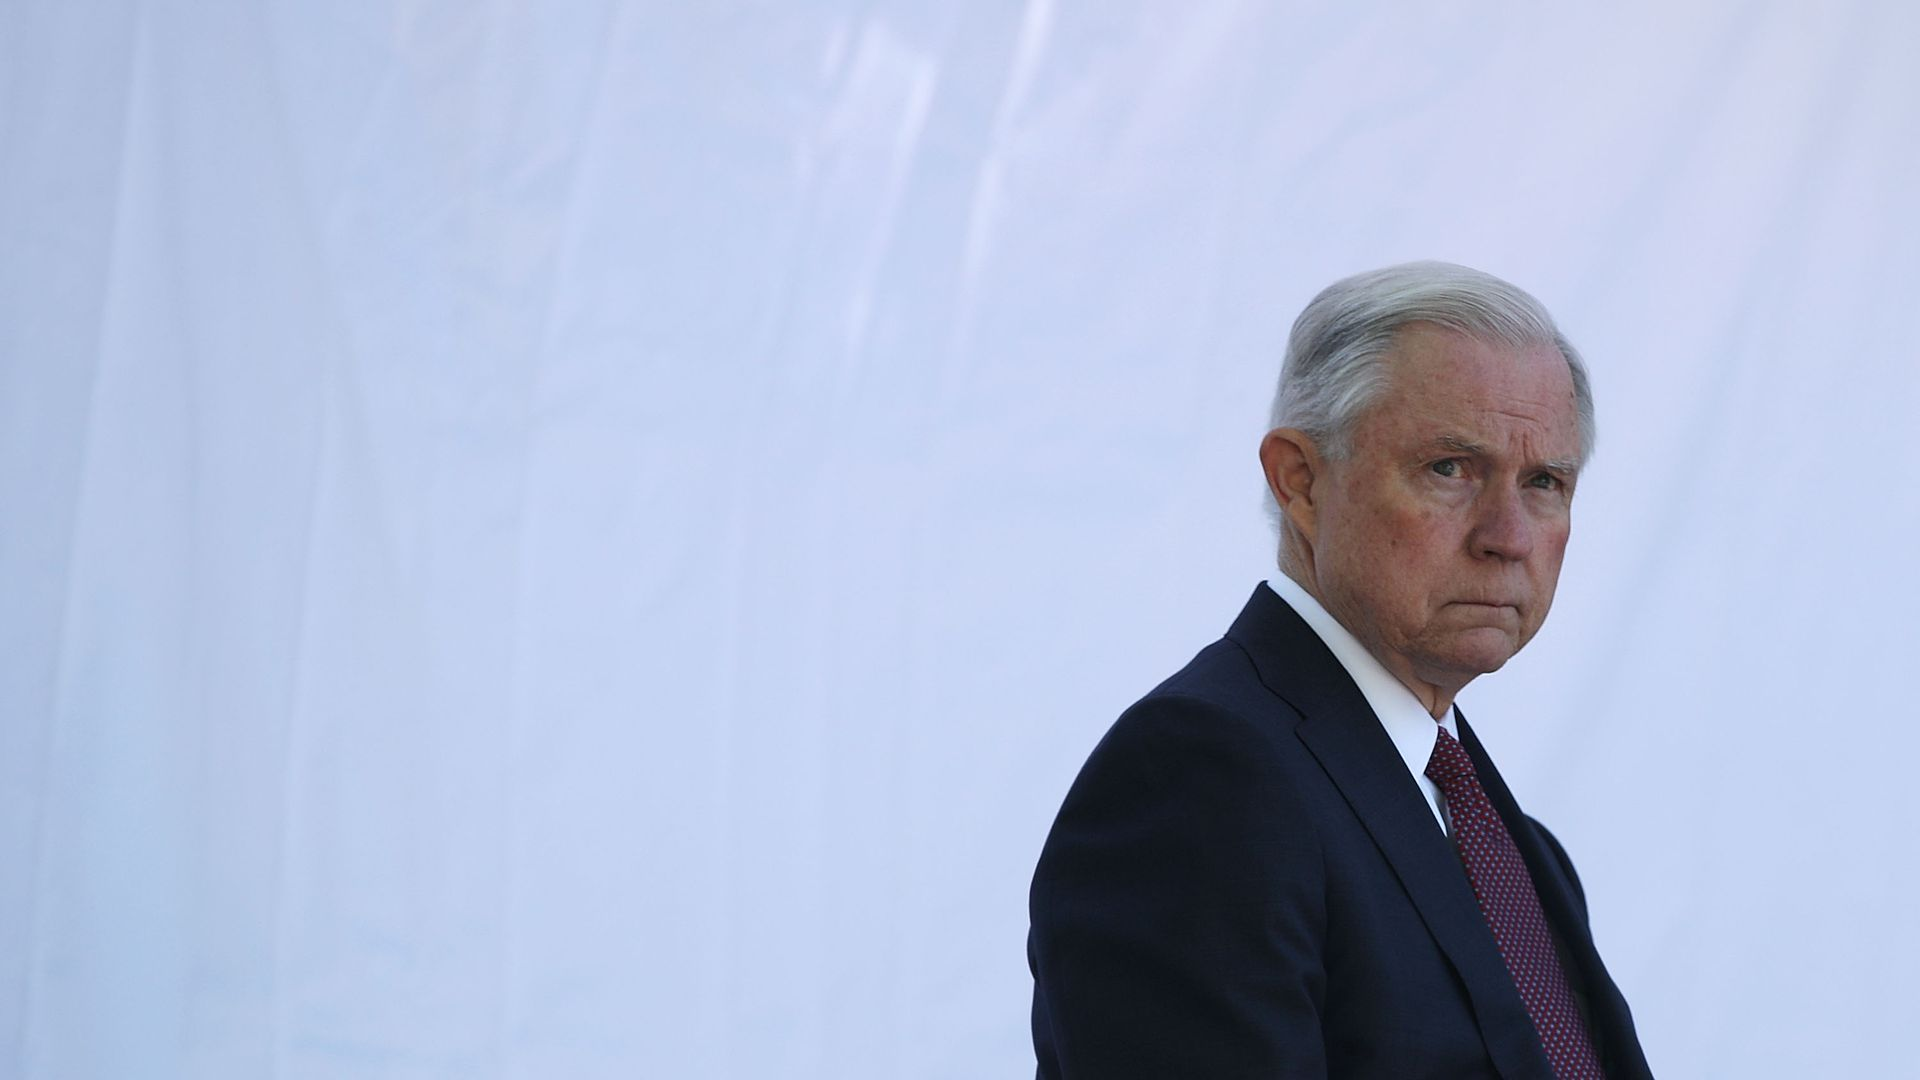 Jeff Sessions scowling